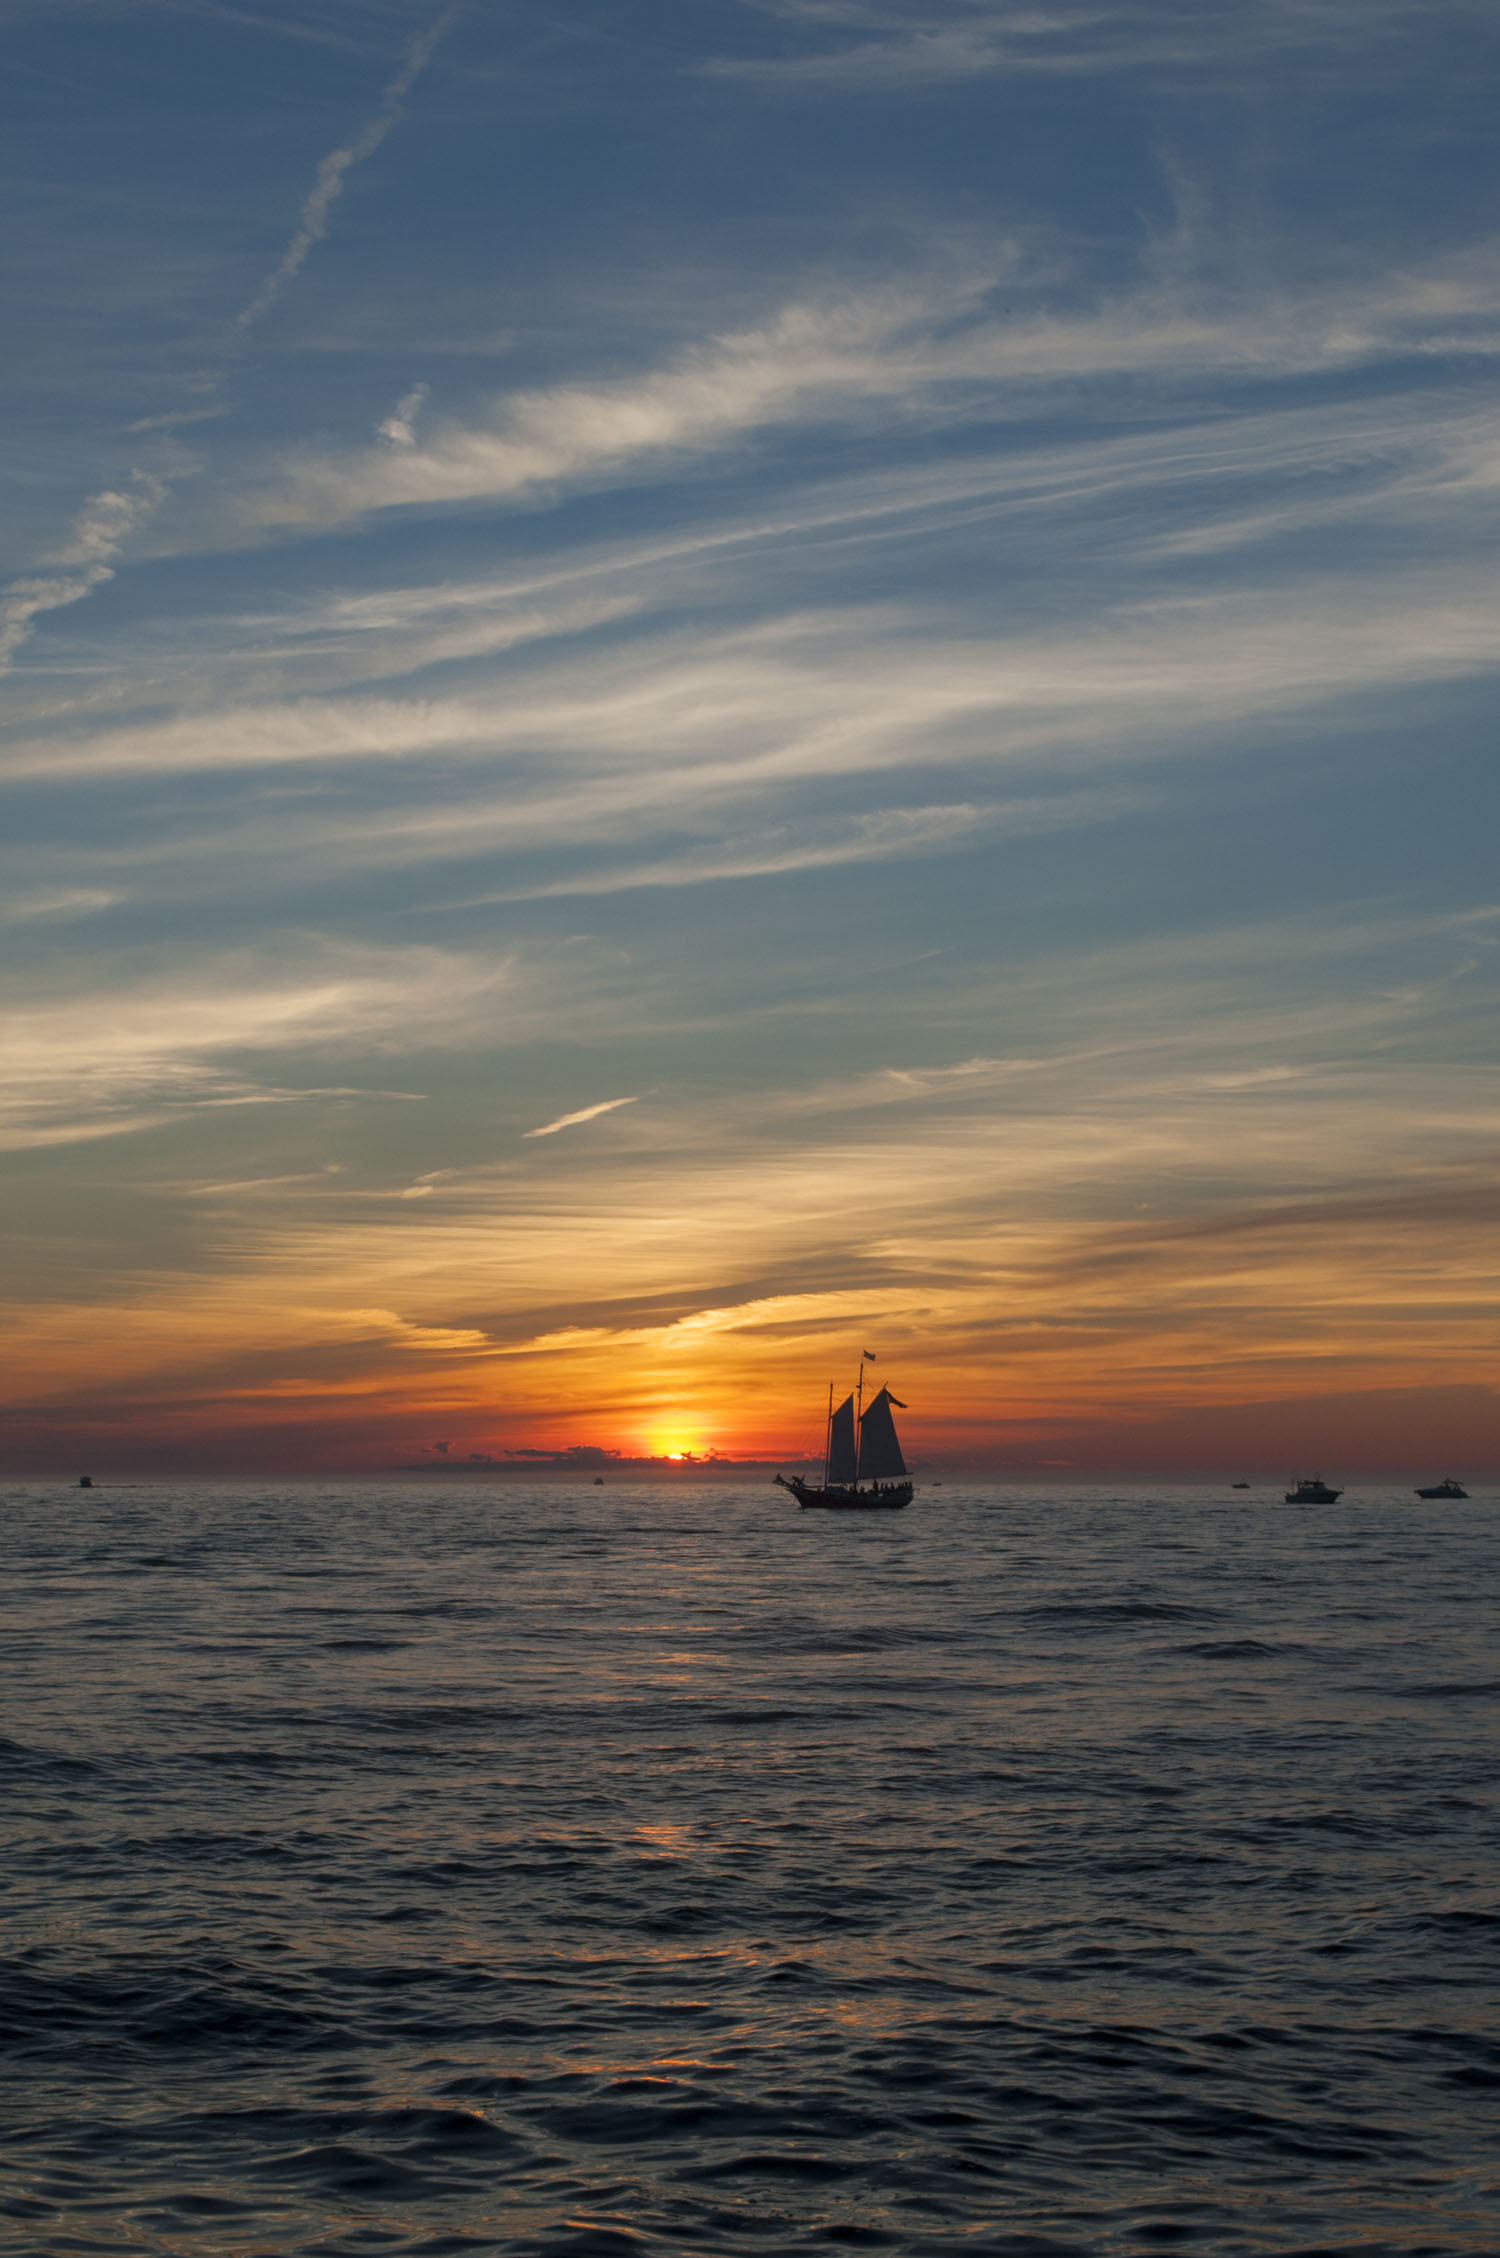 Watching the sunset along the pier is the perfect way to end your day in Grand Haven.